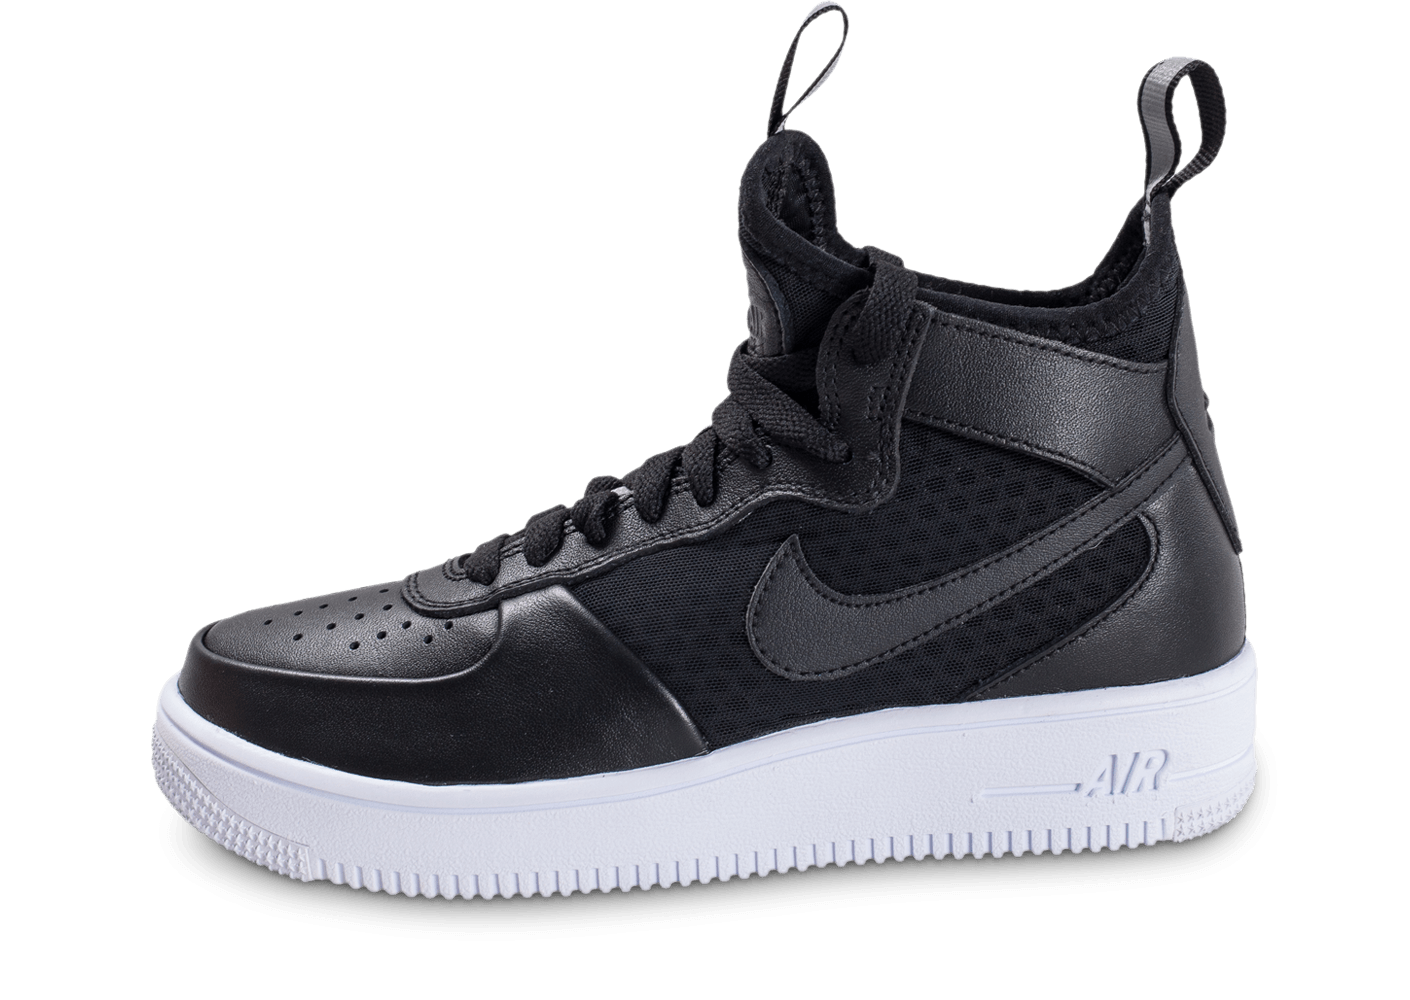 Chaussures confortables Nike Air Force 1 Ultraforce Mid